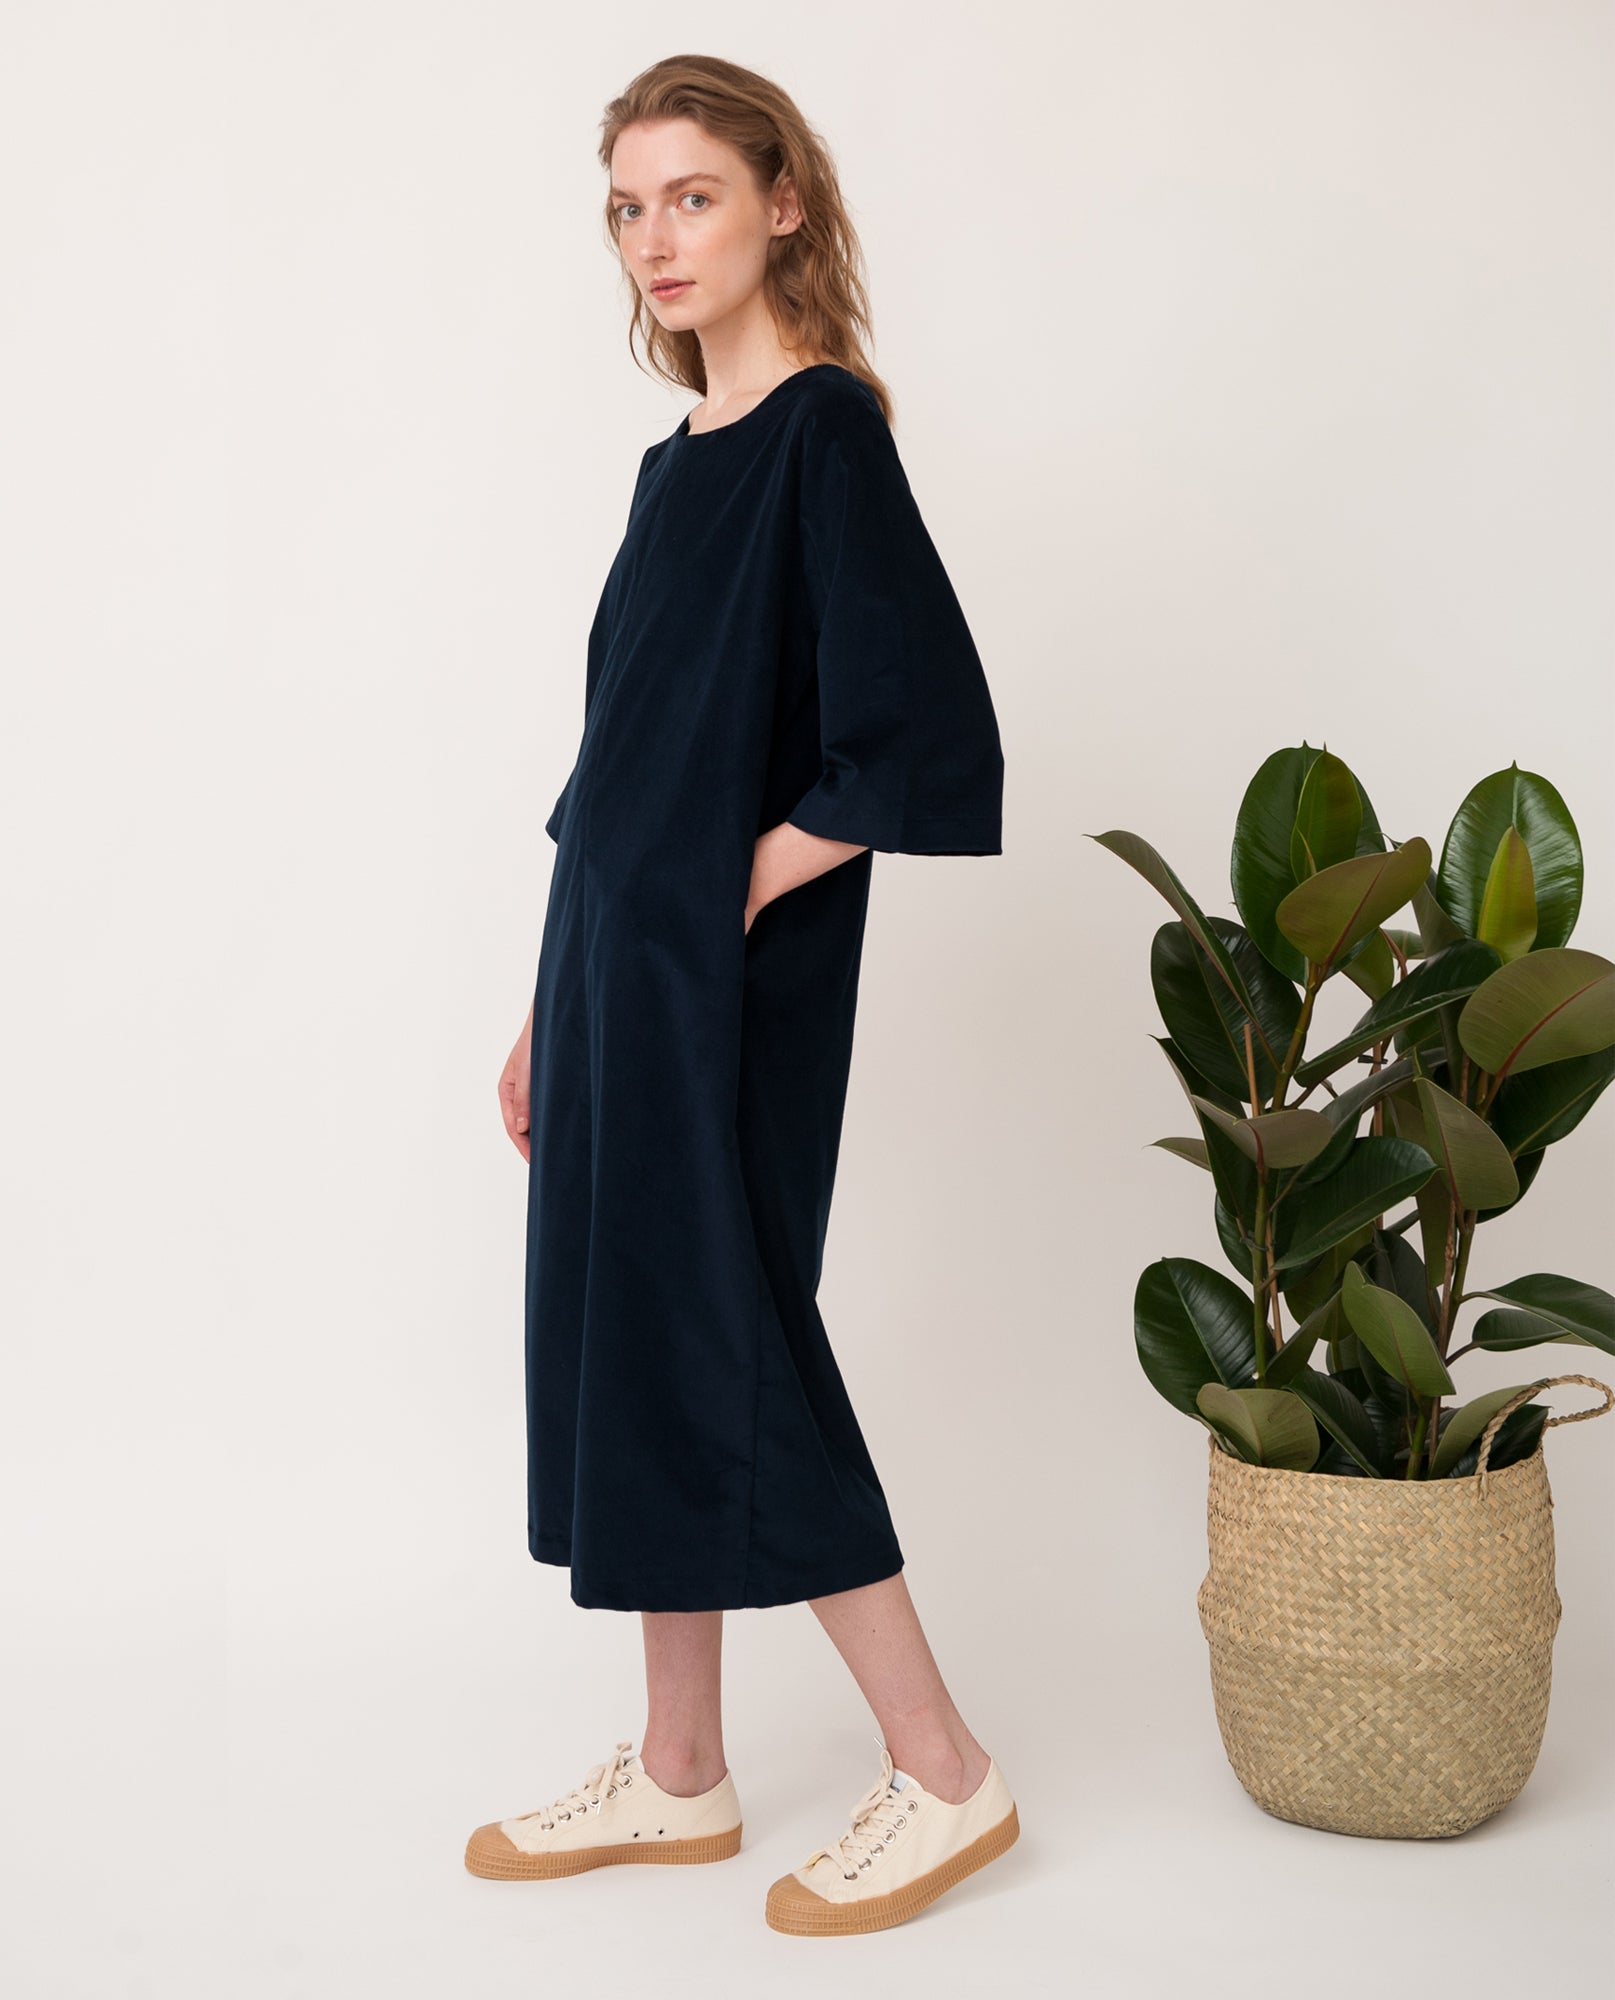 DEBORAH Organic Cotton Cord Dress In Navy